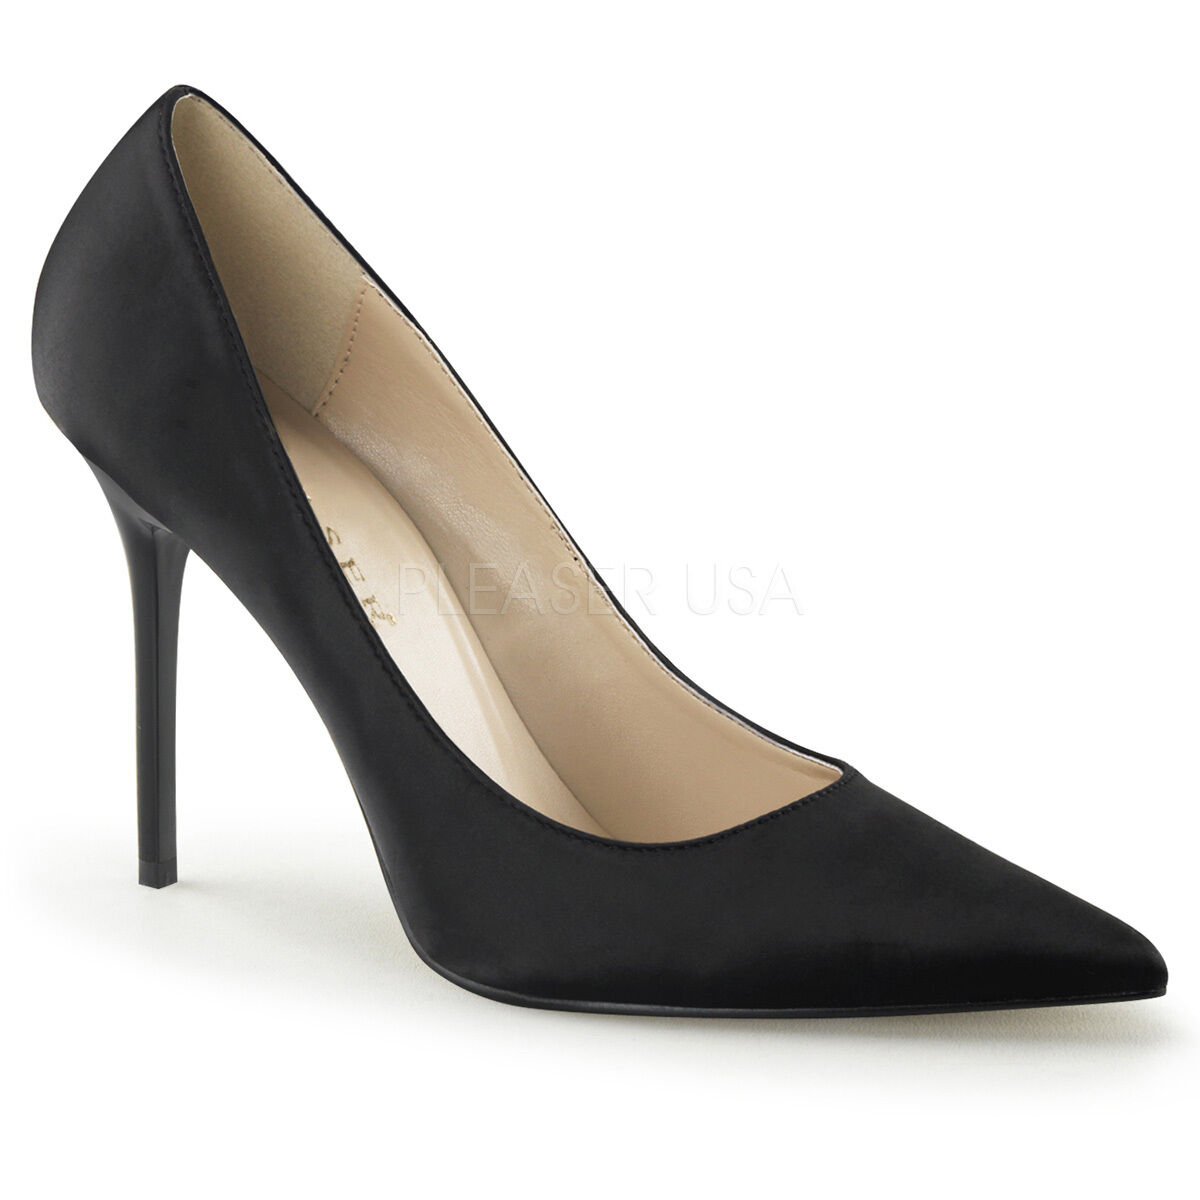 Pleaser Klassik 50.8cm 10.2cm Pumps Stiletto High Heel spitz Pumps 10.2cm Größen 736bec